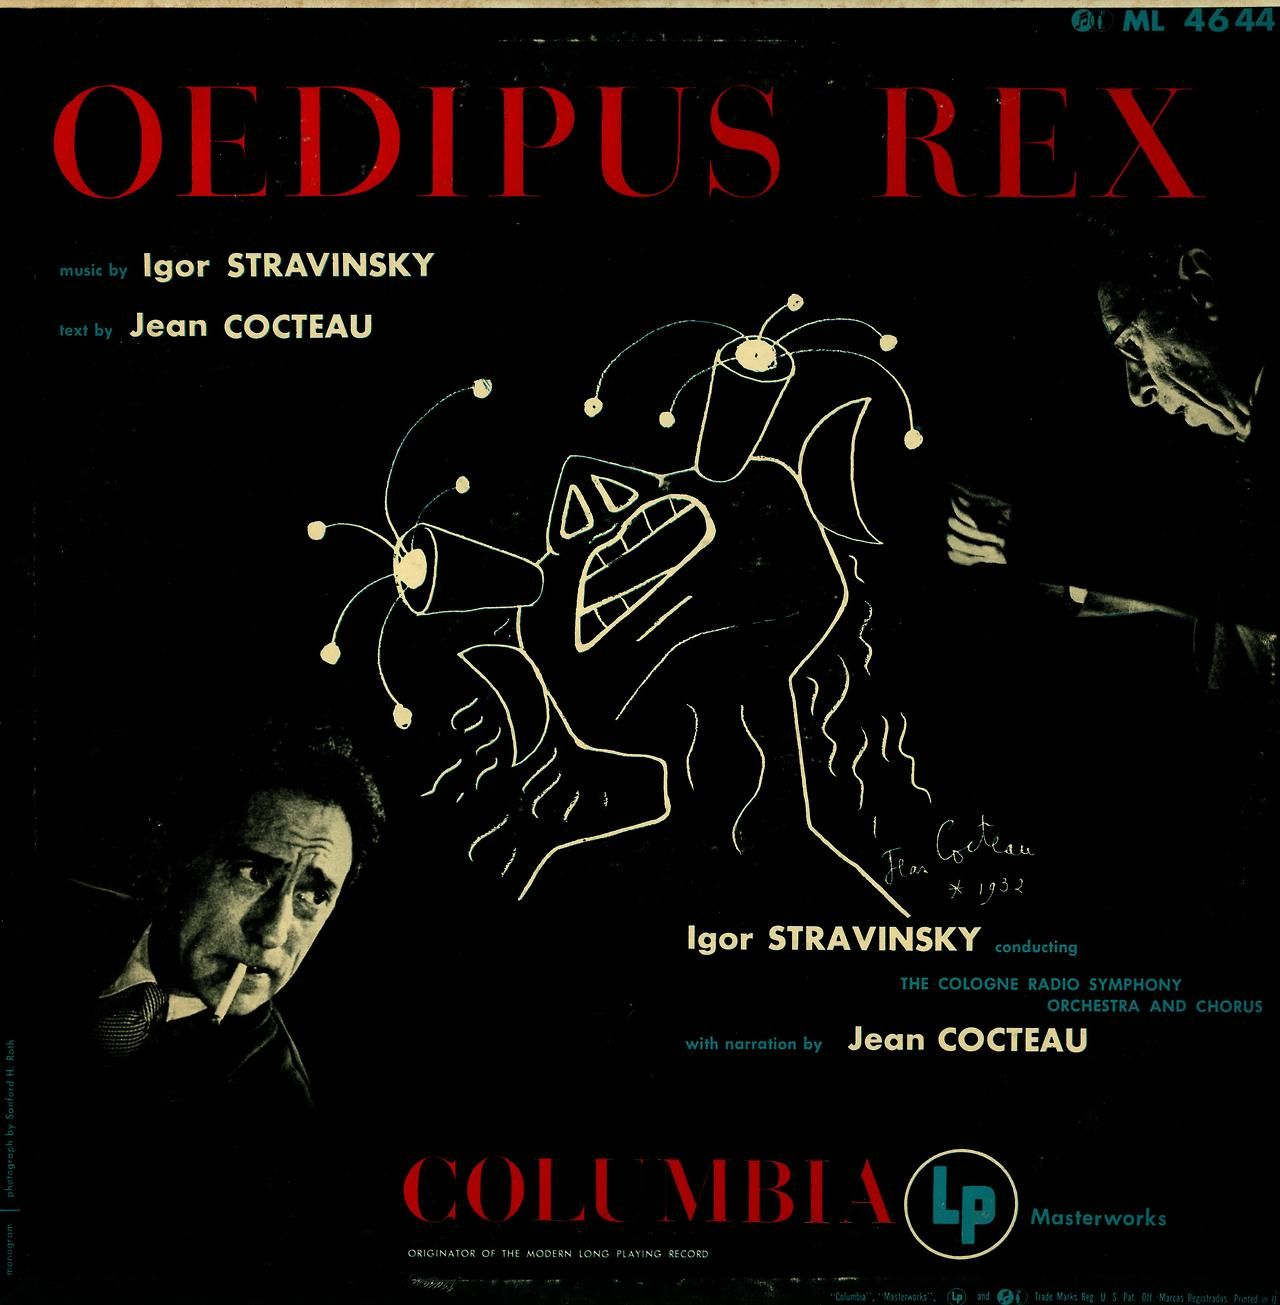 Stravinsky- Oedipus Rex (Text and Narration by Jean Cocteau) Cologne Radio Symphony Orchestra and Chorus; Igor Stravinsky, cond. Columbia ML 4644 Cover art by Jean Cocteau